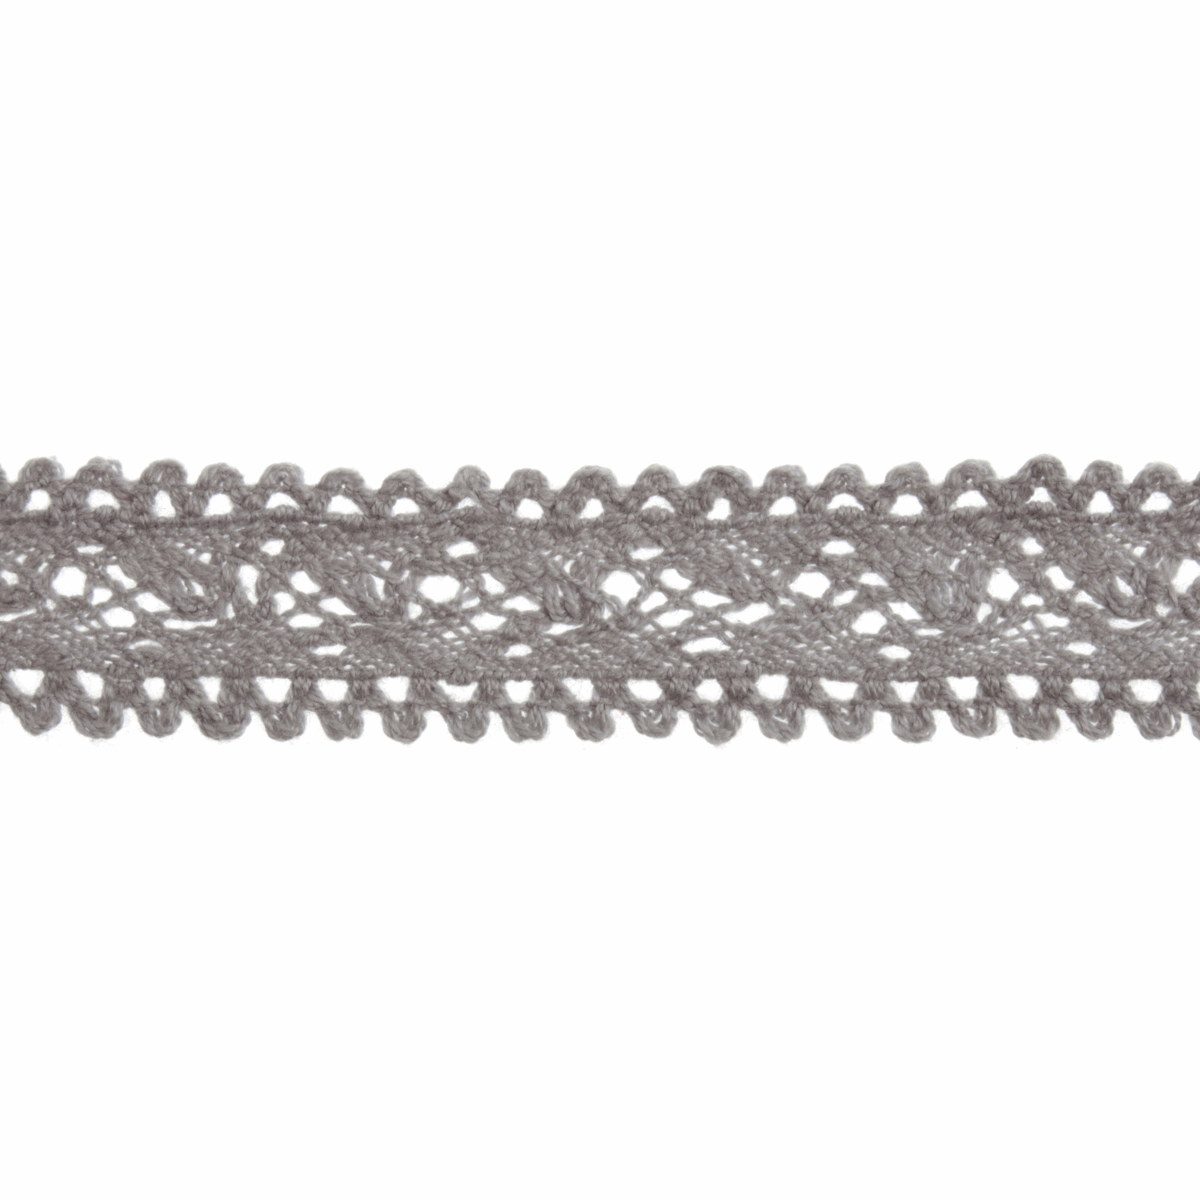 Picture of Cotton Lace: 4m x 18mm: Grey